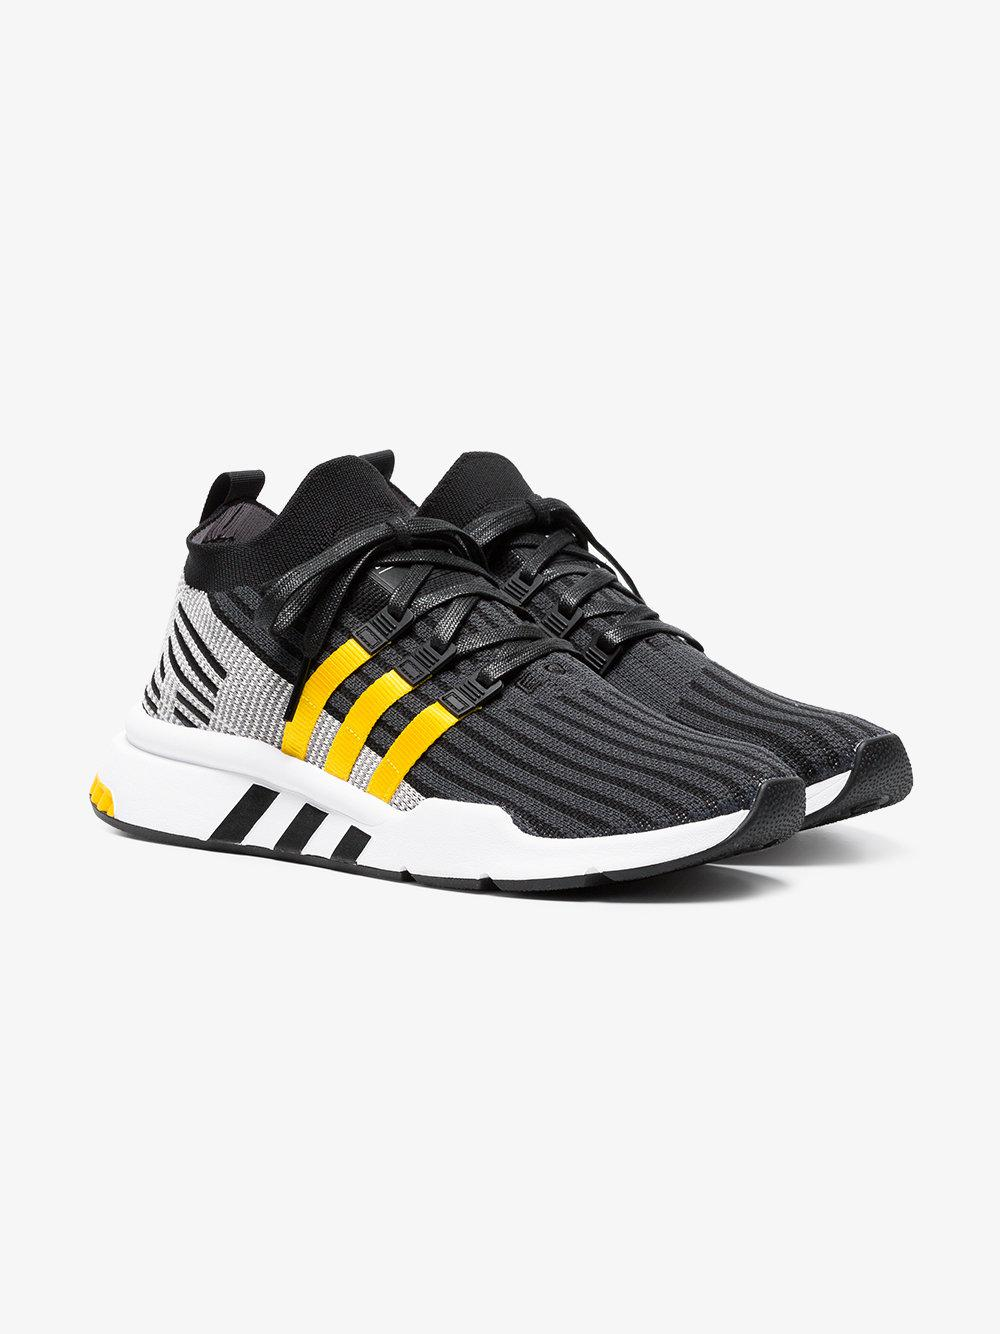 sports shoes a2609 5370e ... classic Lyst - Adidas Black And Yellow Eqt Support Mid Adv Primeknit  ... bf9b6 ...